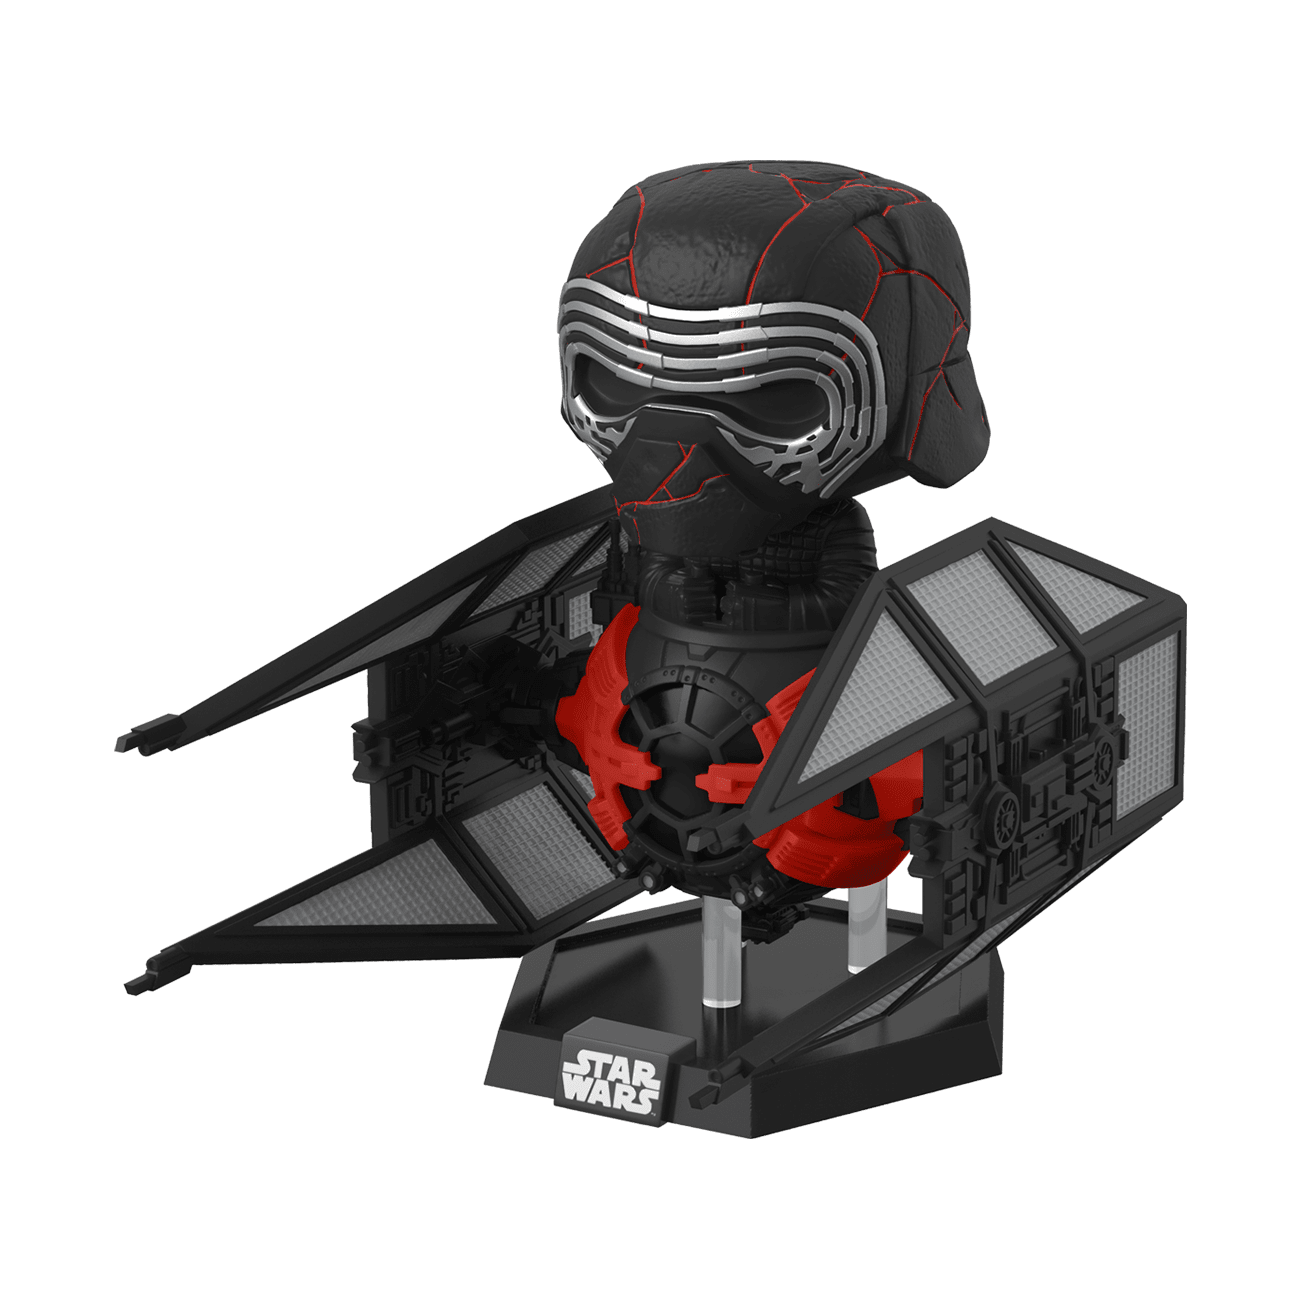 Funko Star Wars: The Rise of Skywalker Supreme Leader Kylo Ren Pop! Deluxe Vinyl Figure